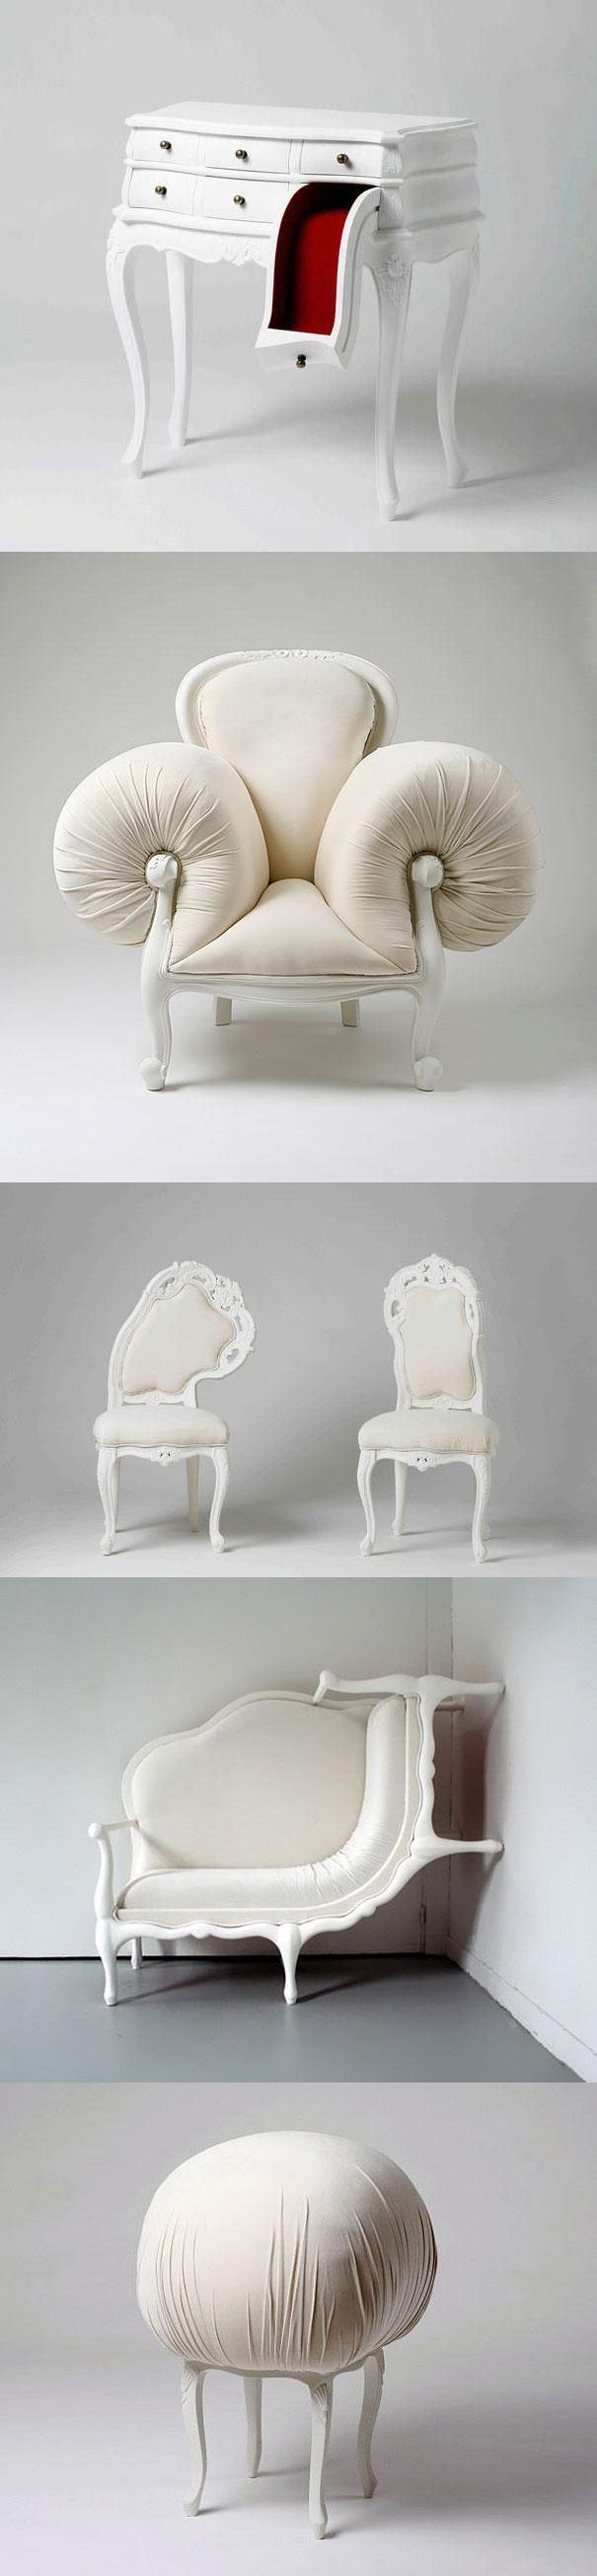 ideas about Weird Furniture on Pinterest Gothic furniture